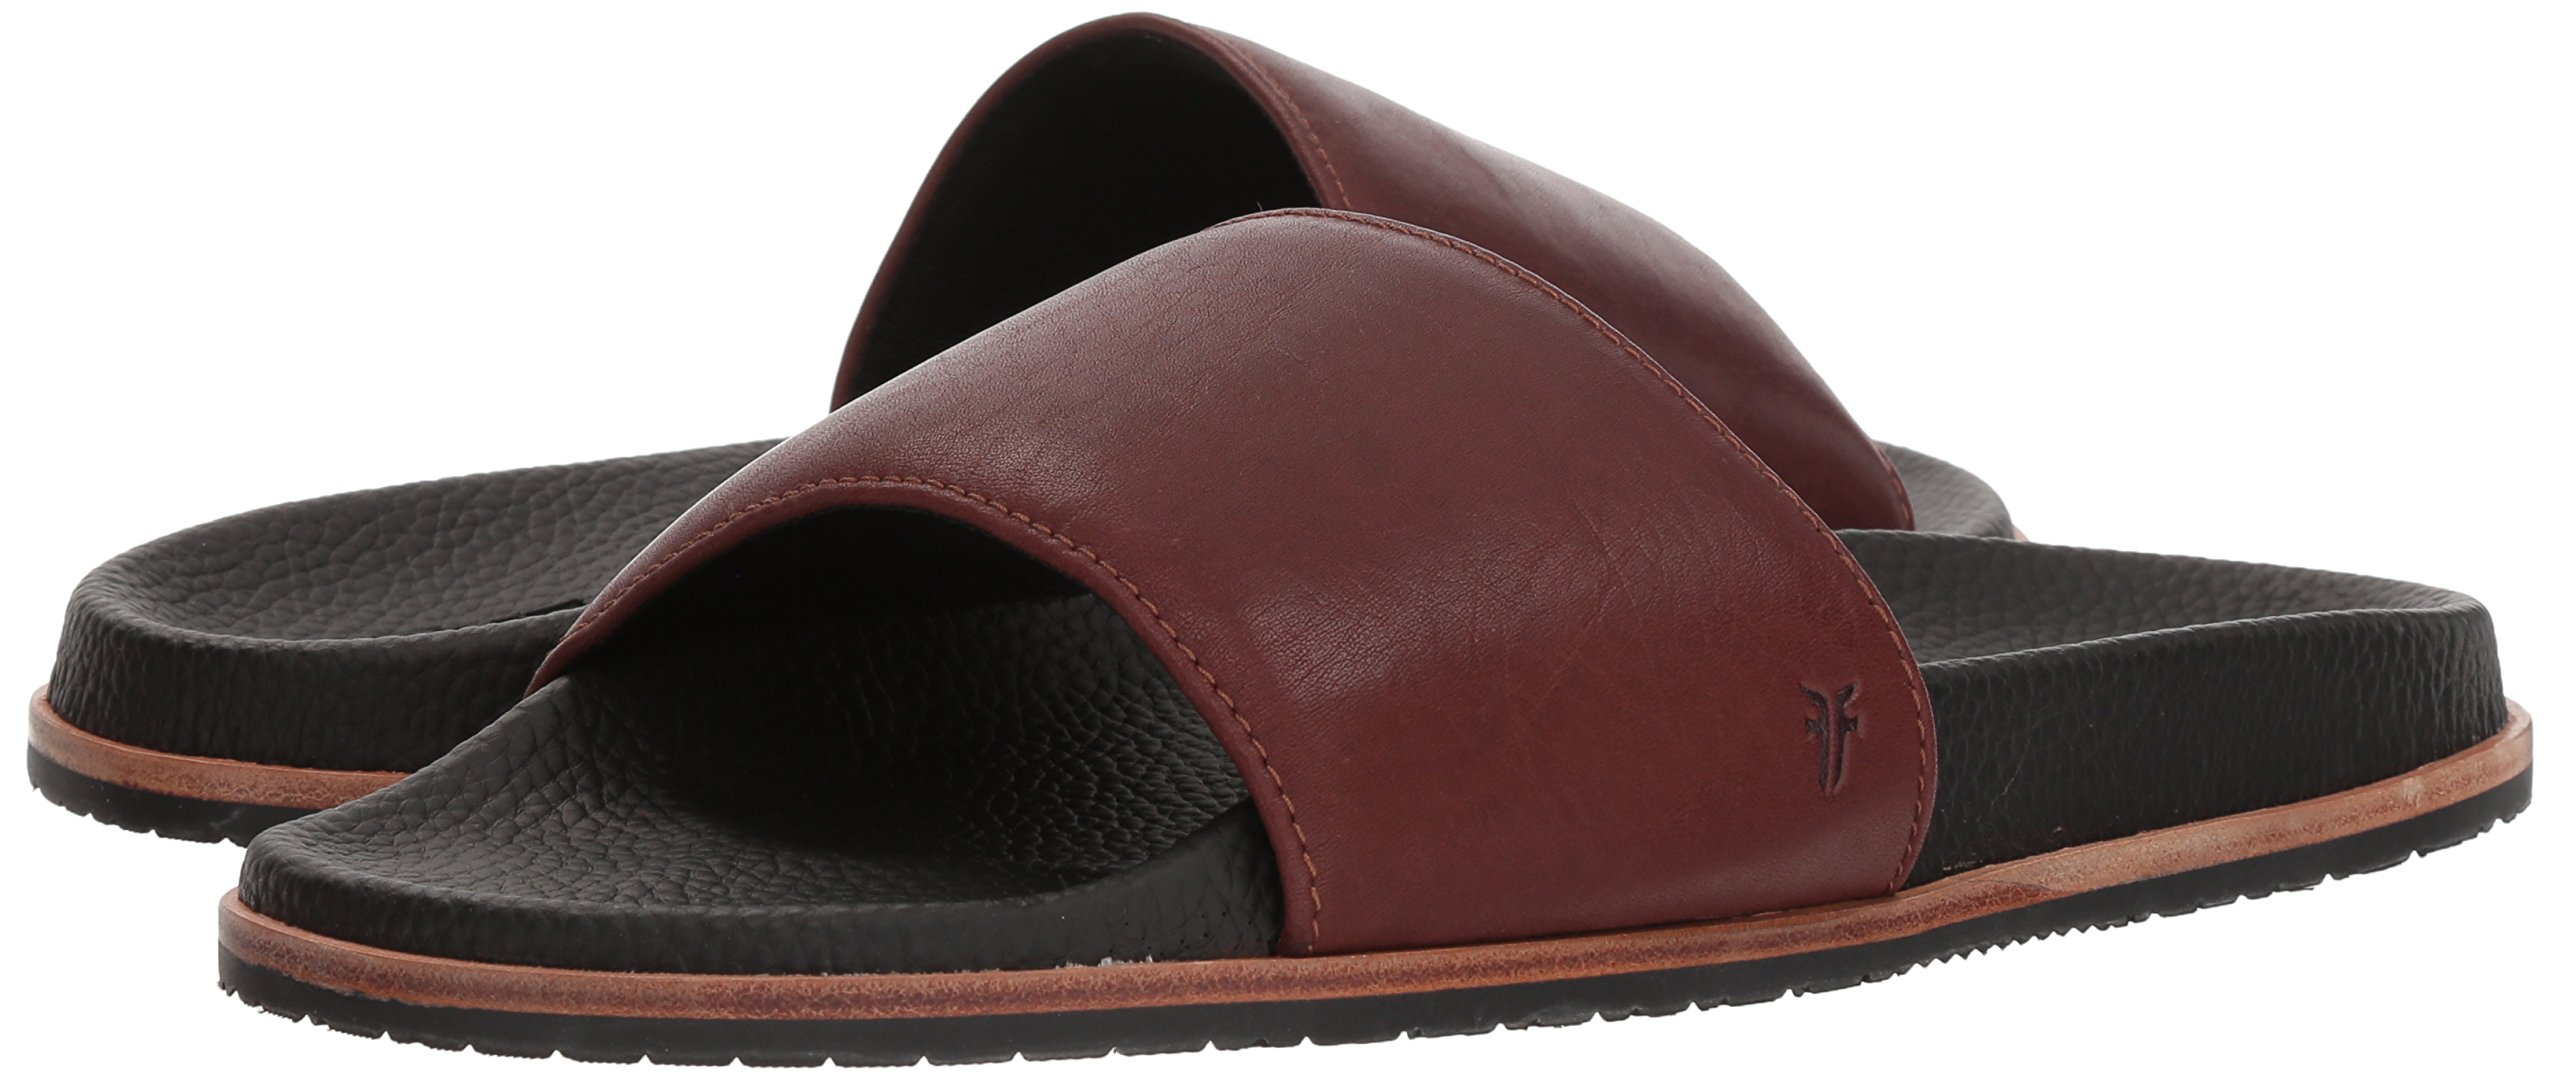 FRYE Men's Emerson Slide Sandal, Brown 12 Medium US by FRYE (Image #5)